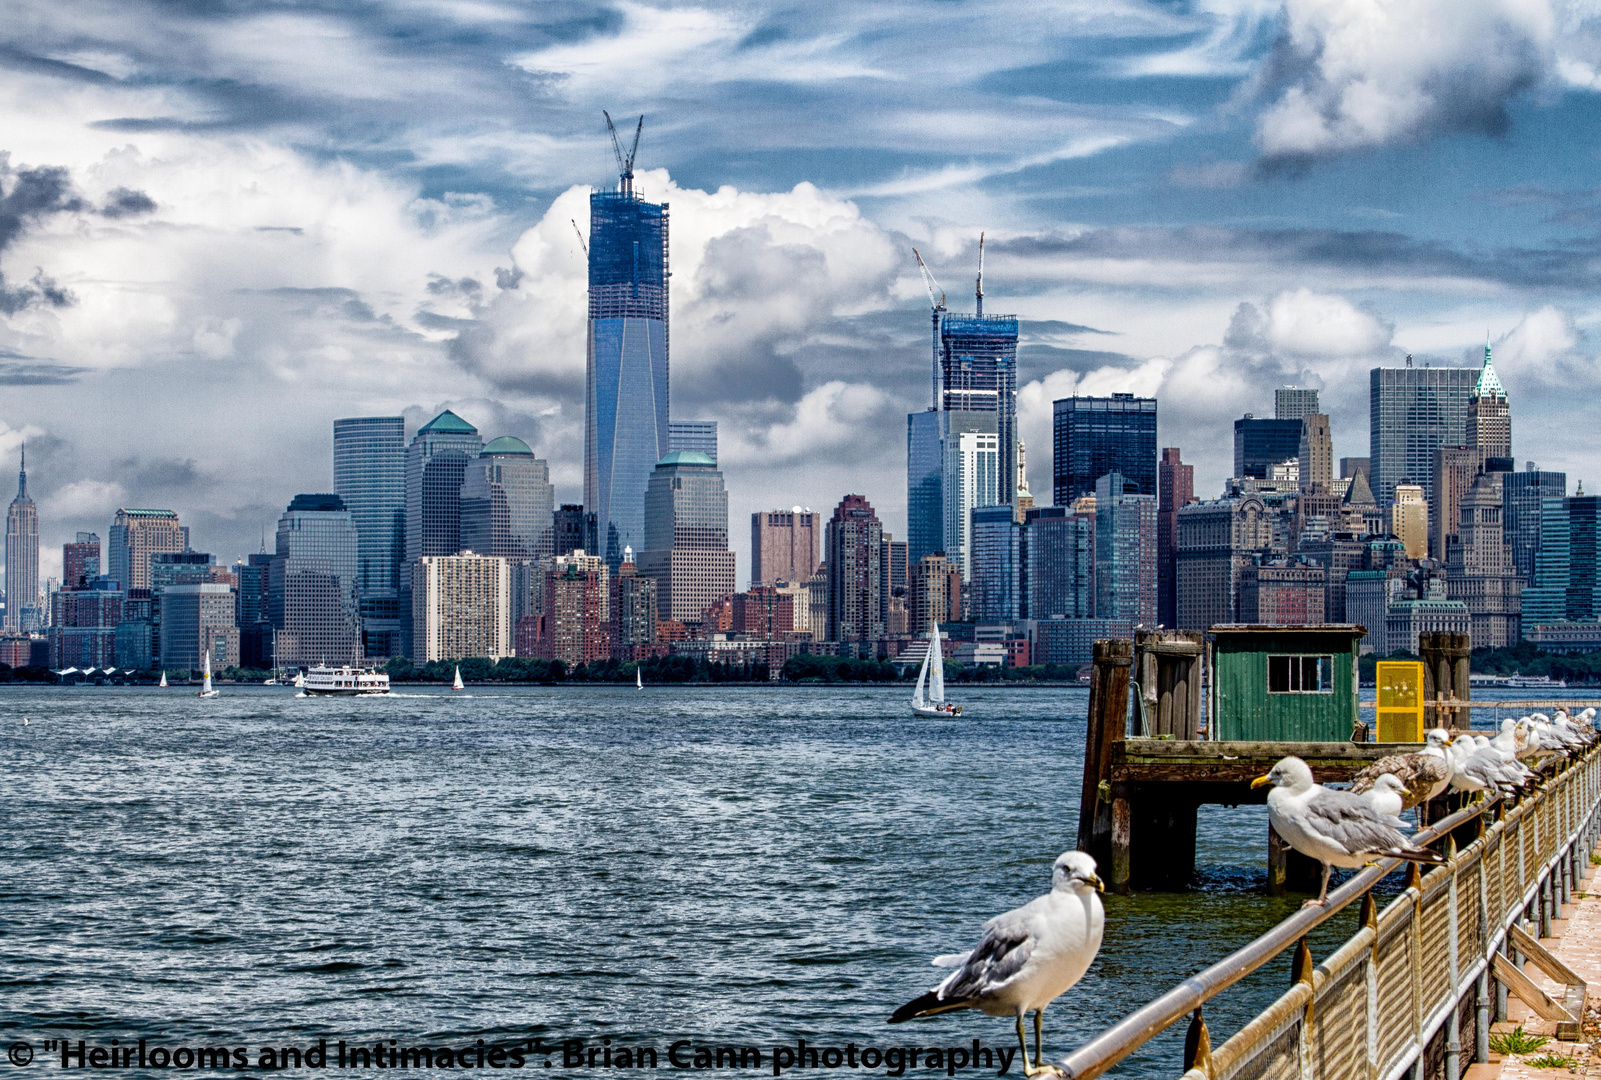 From Liberty Island